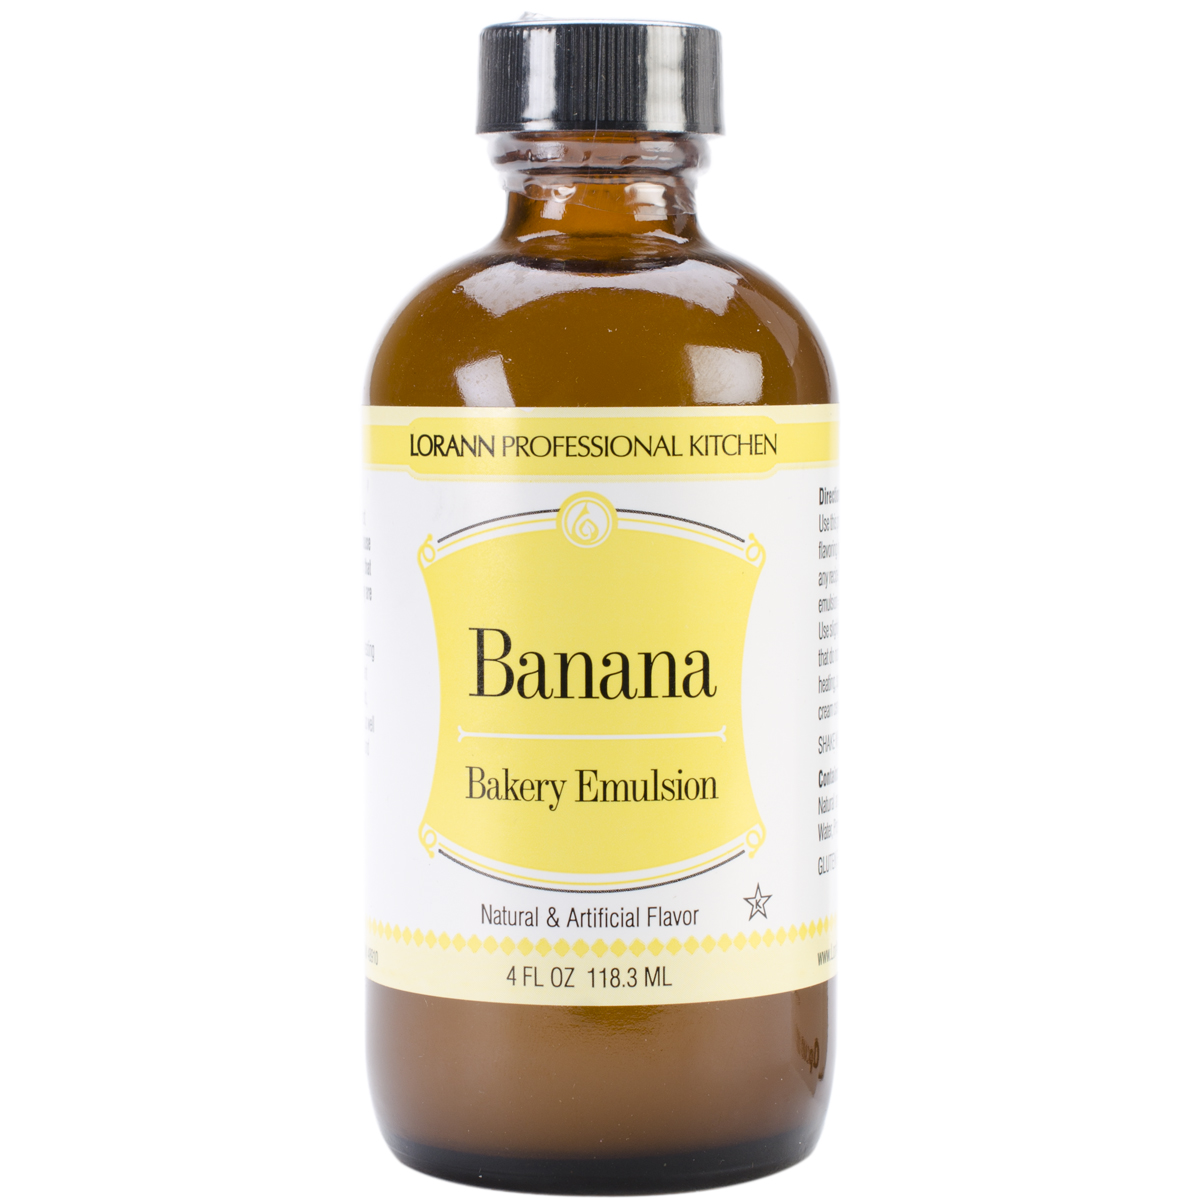 Lorann Oils Bakery Emulsions Natural Artificial Flavor Banana Joann